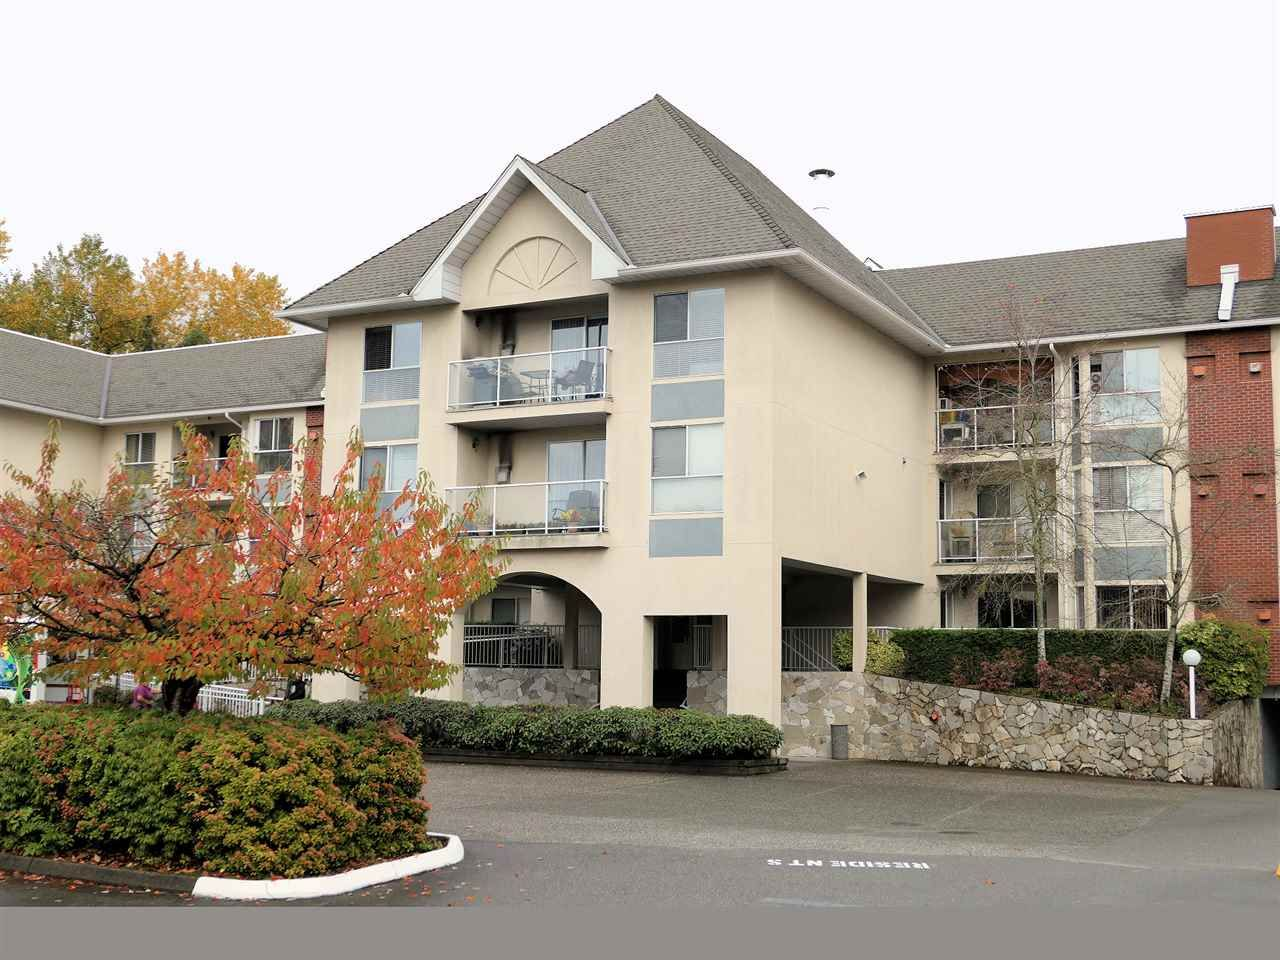 """Main Photo: 305 19835 64TH Avenue in Langley: Willoughby Heights Condo for sale in """"Willowbrook Gate"""" : MLS®# R2319410"""